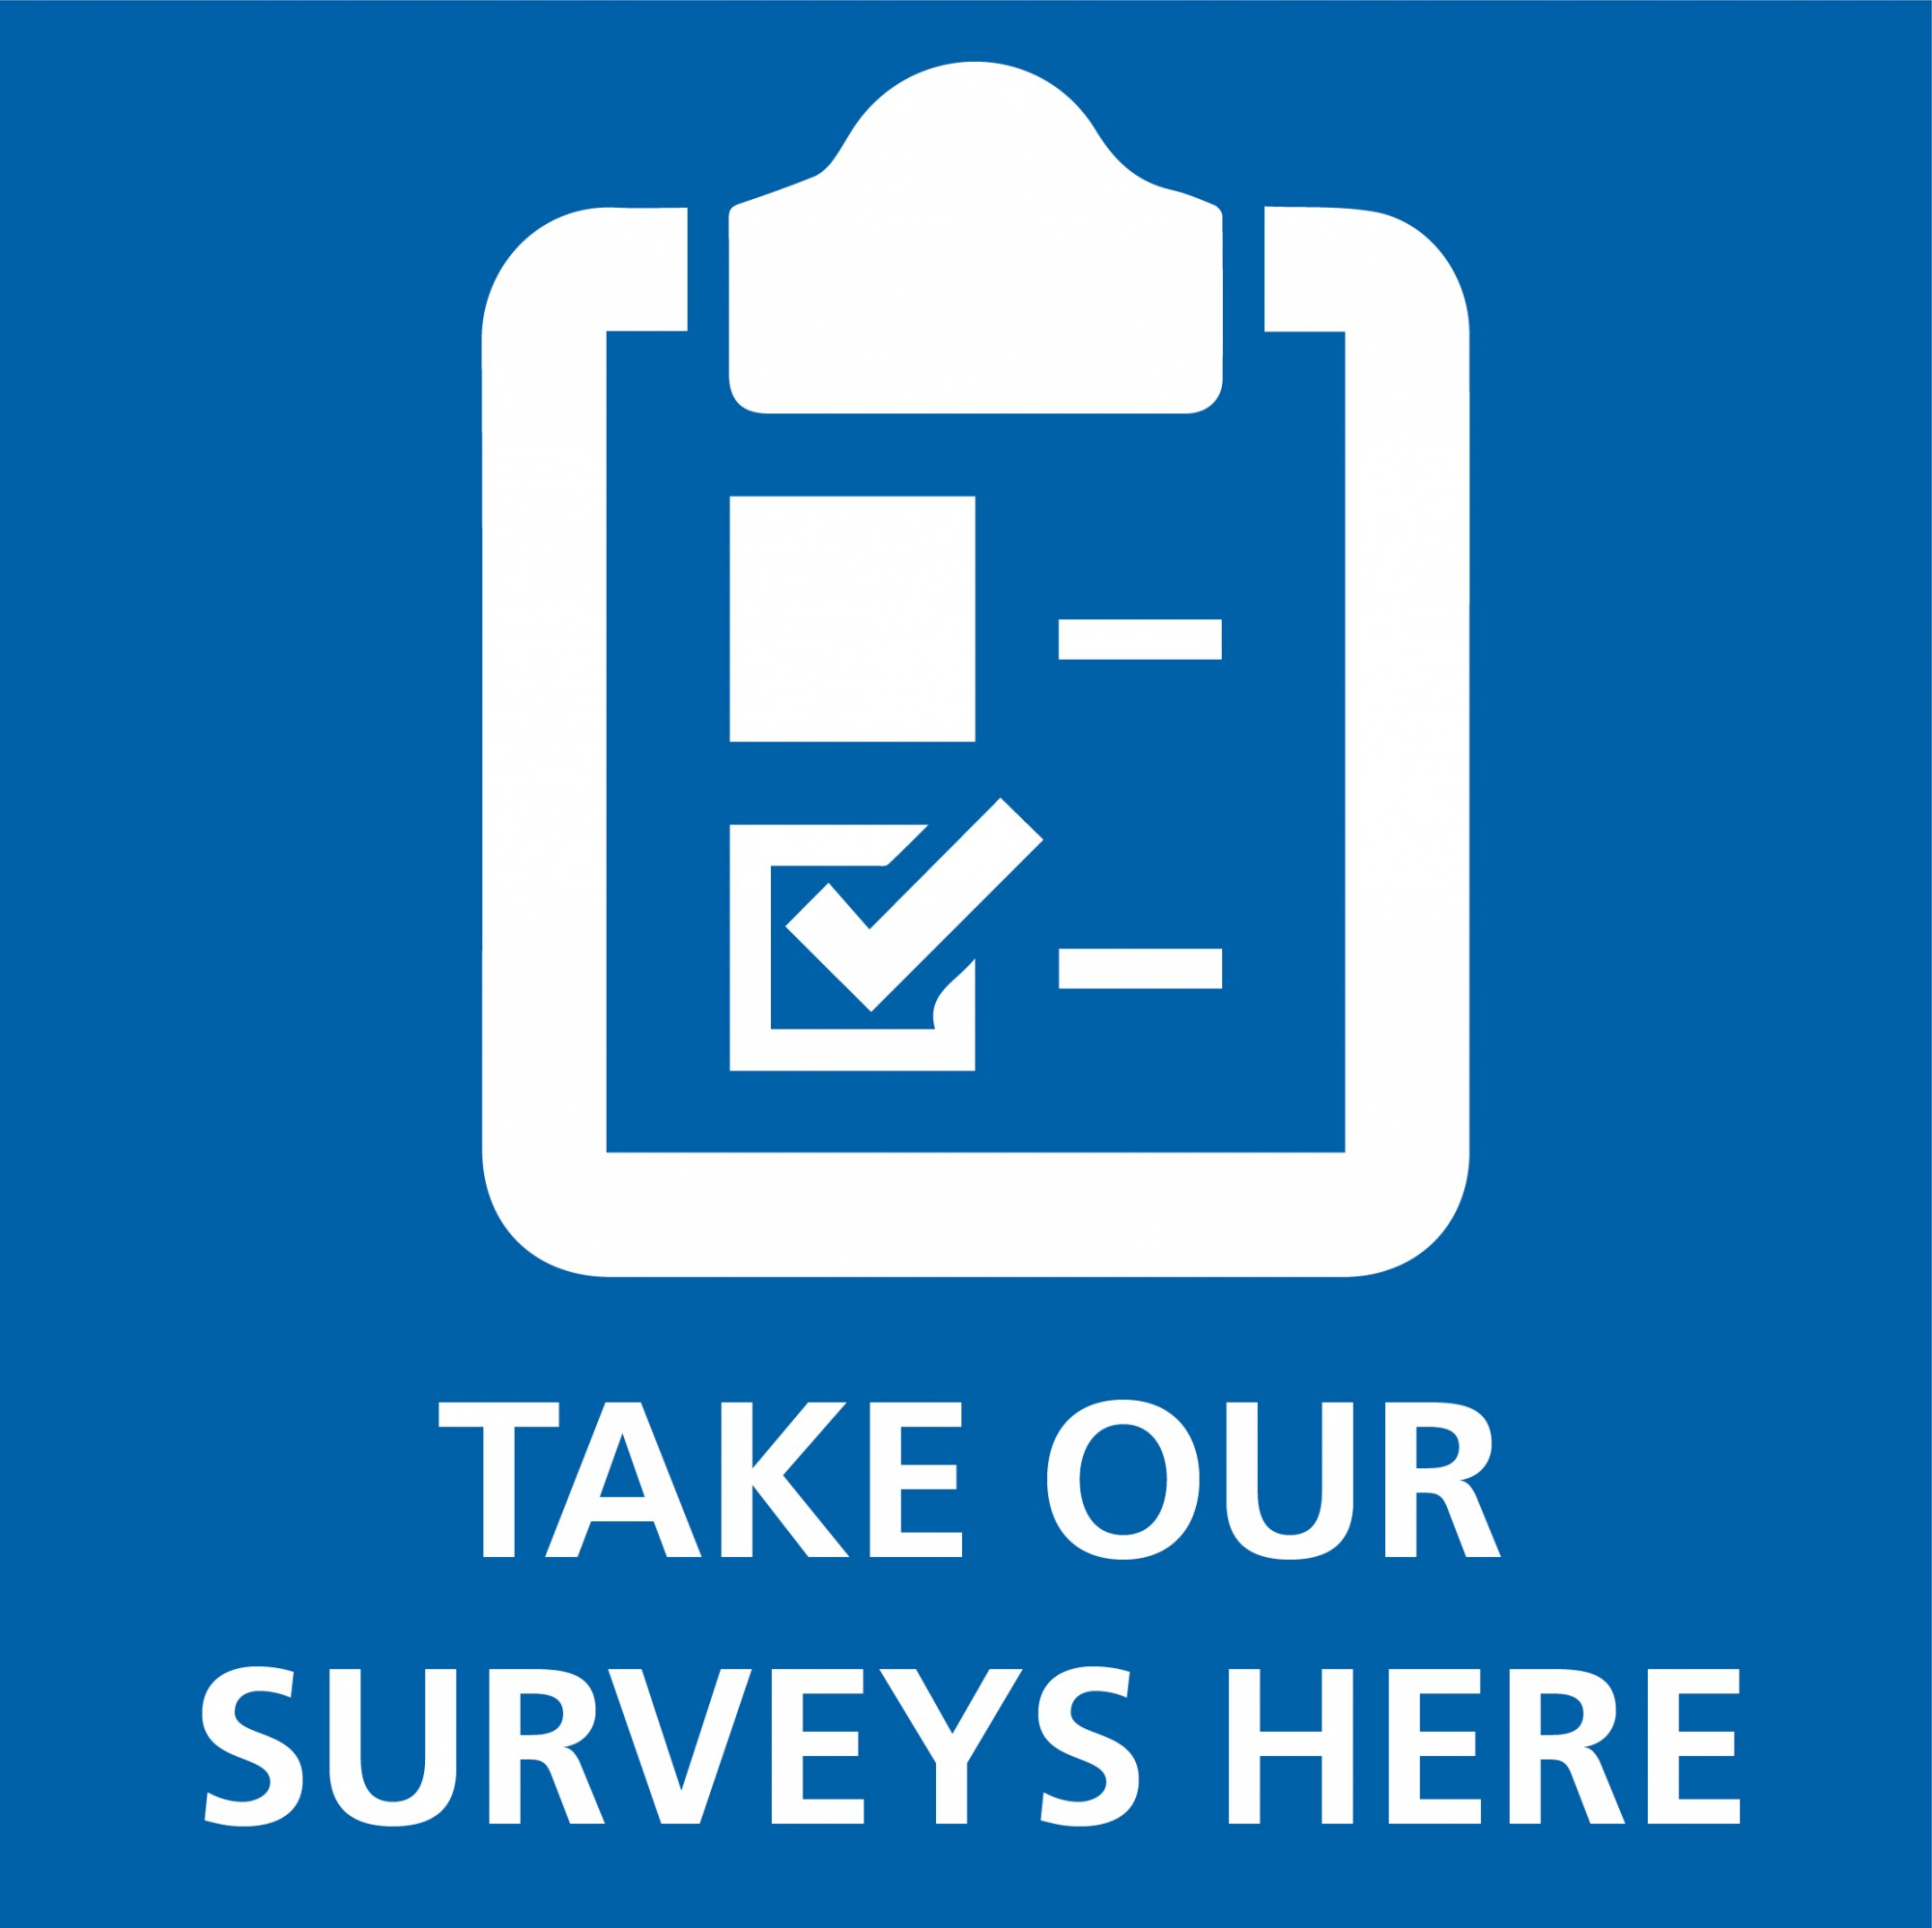 Take our surveys logo